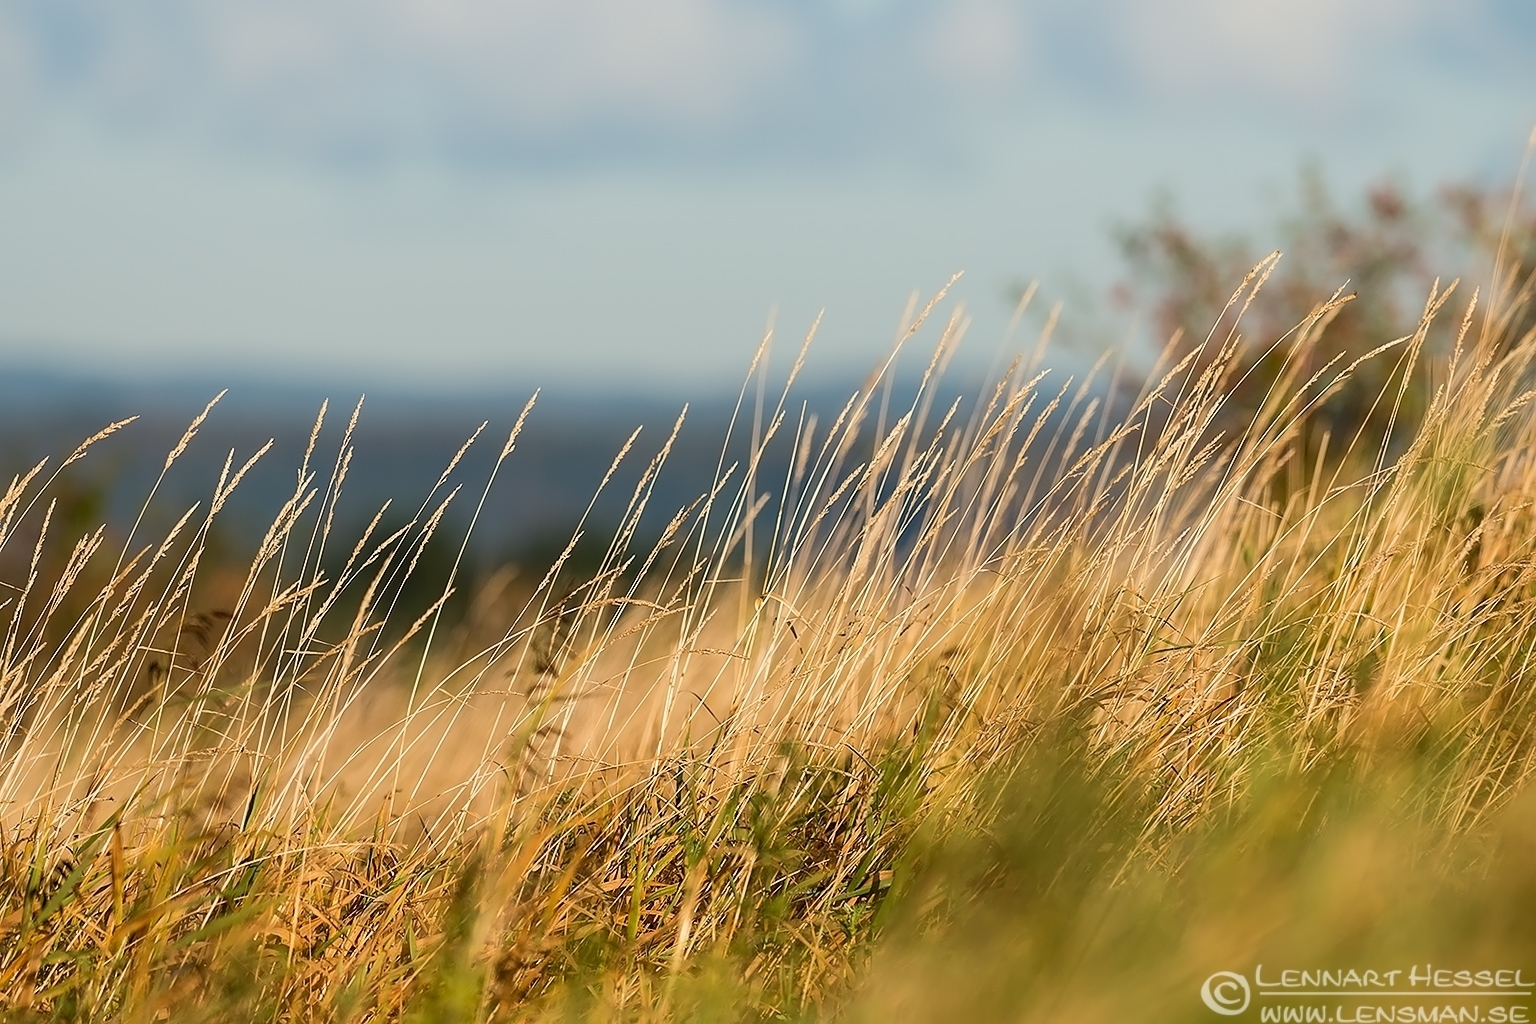 Grass in the wind at Brudarebacken